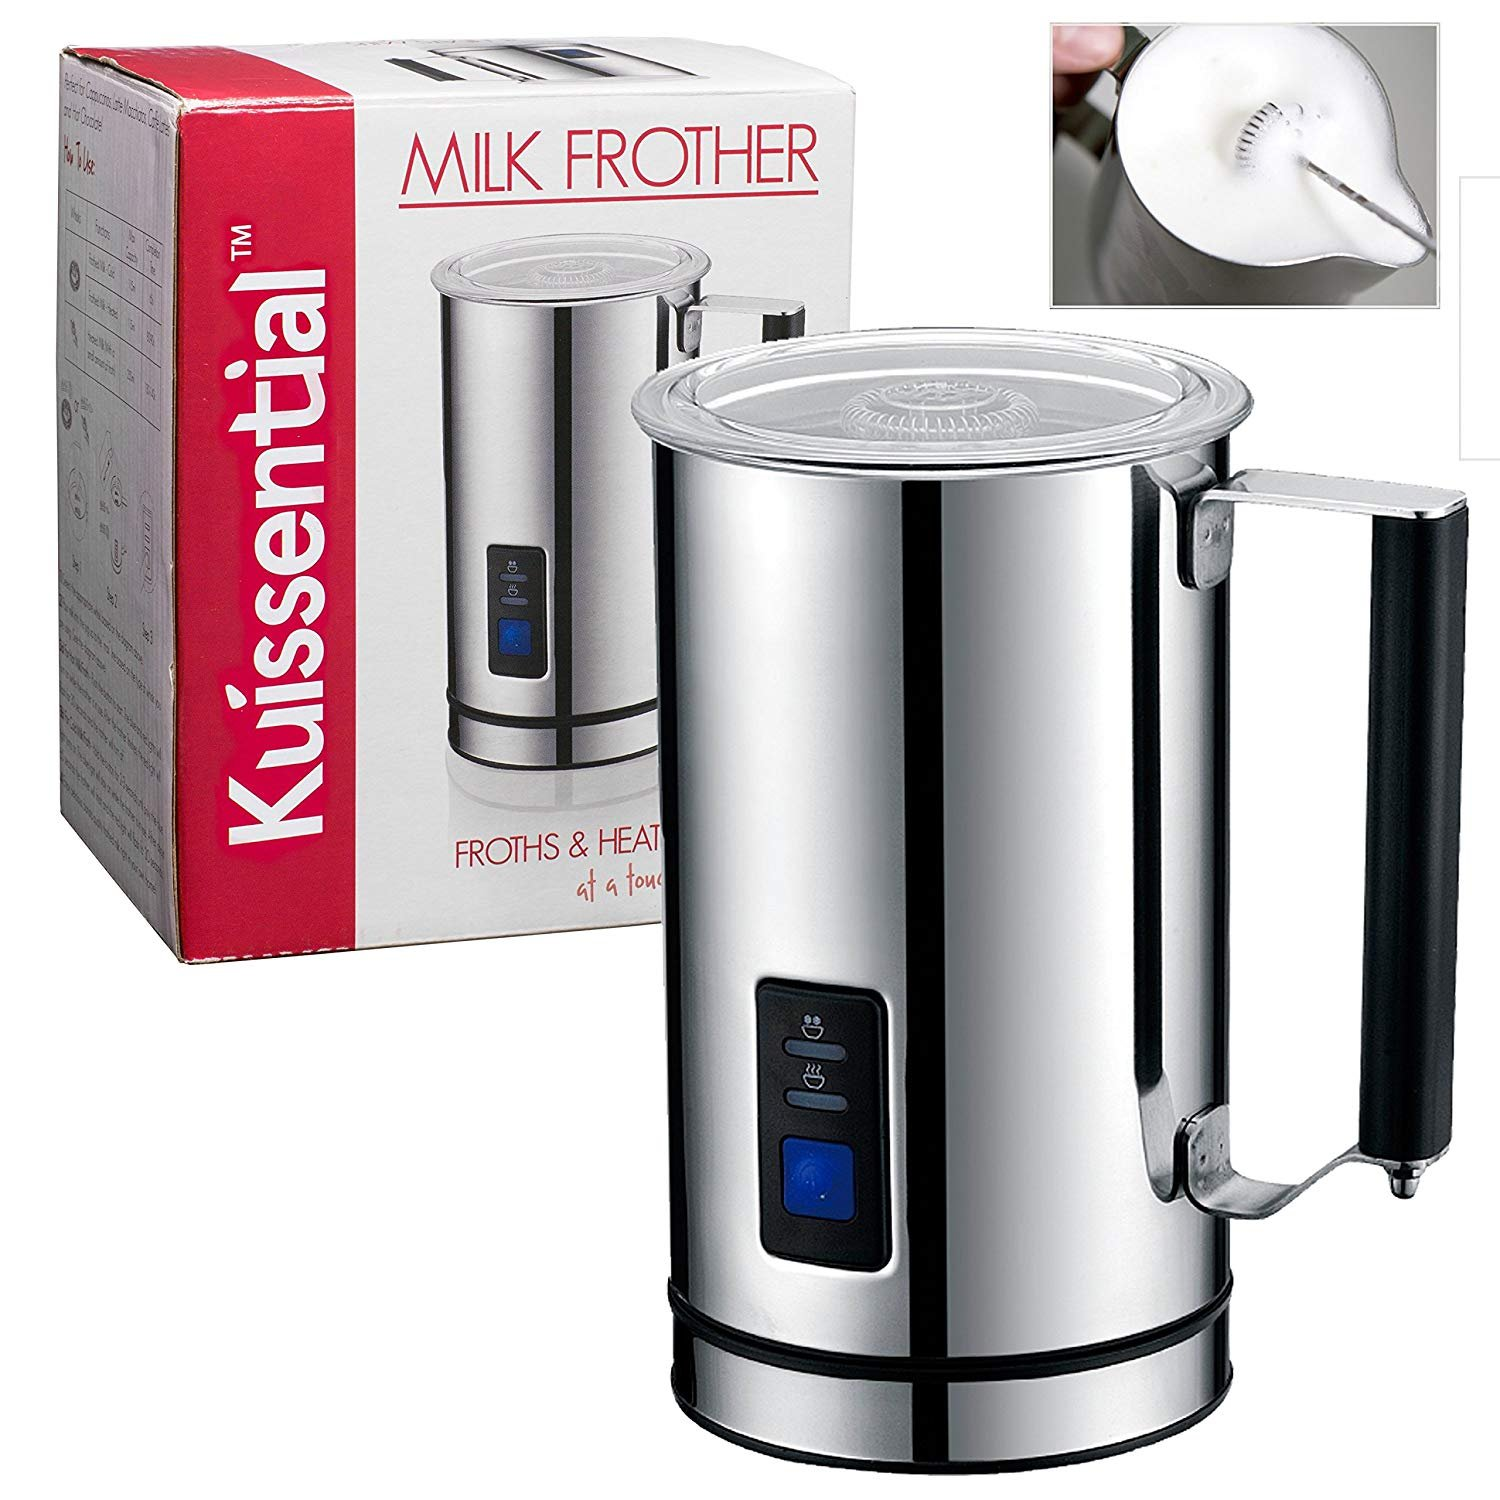 Kuissential Deluxe Automatic Milk Frother and Warmer, Cappuccino Maker KDFR